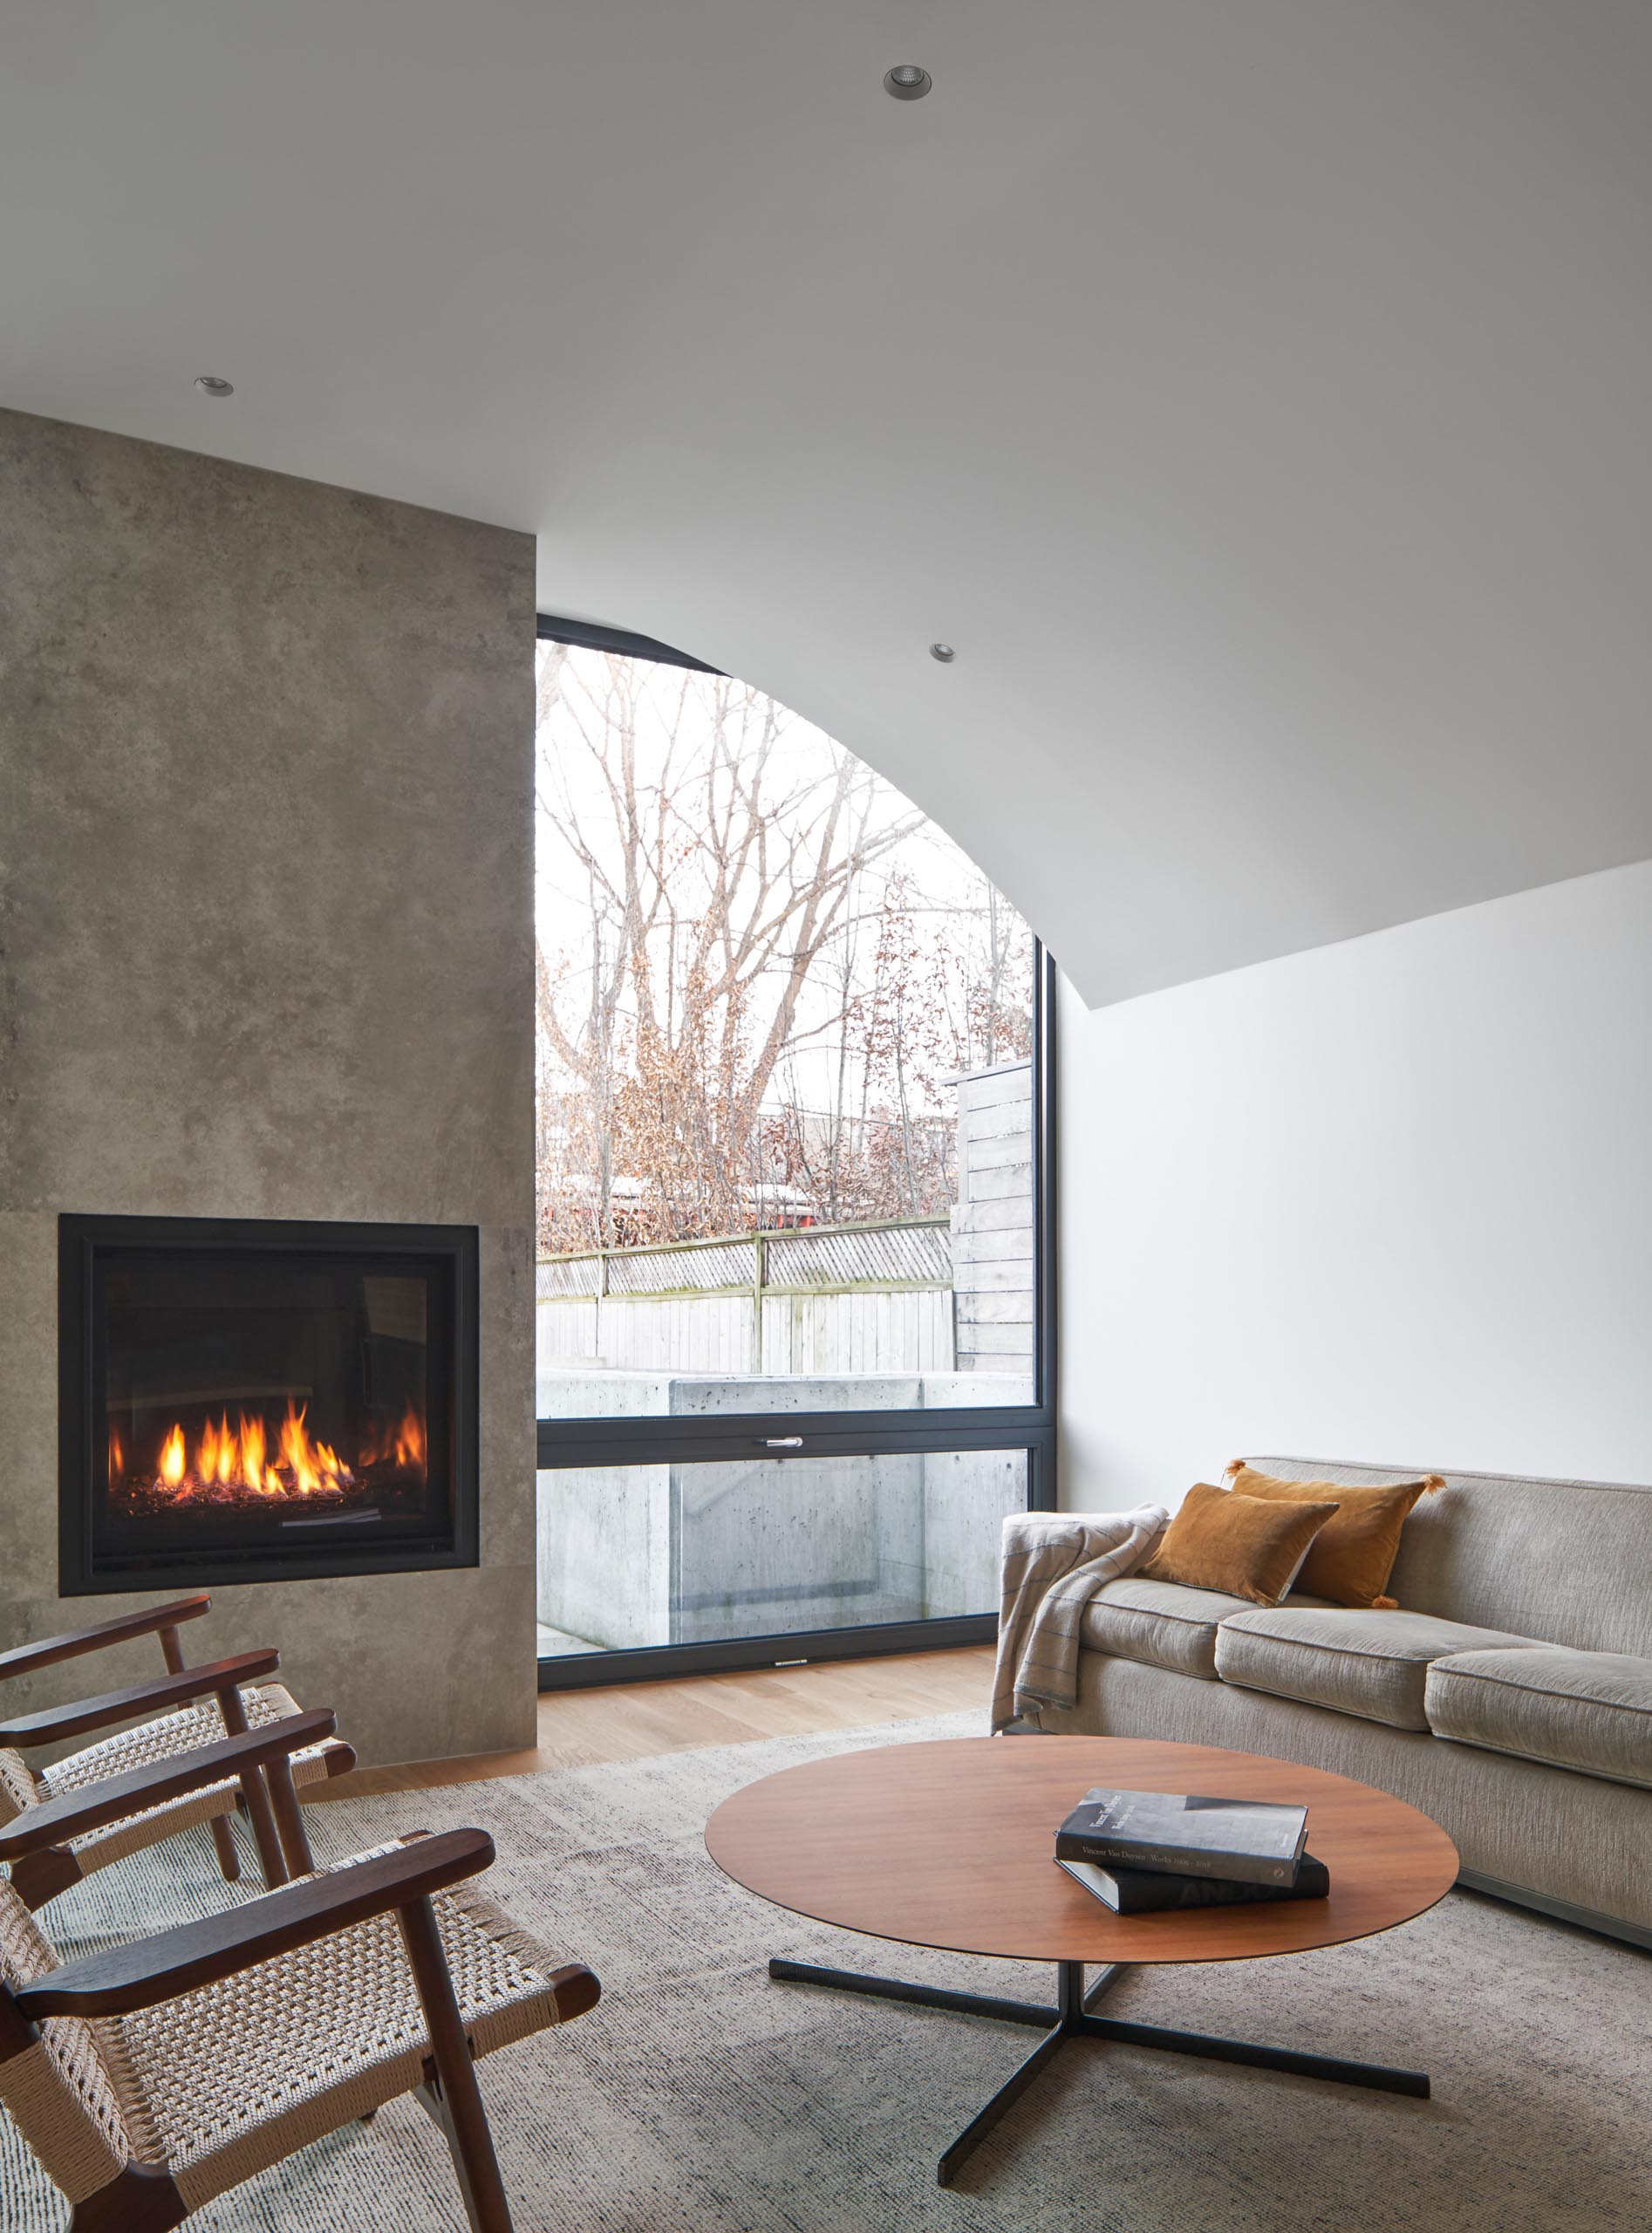 This modern living room, which is located at the rear of the home, has a fireplace and a large window that provides a view of the backyard.